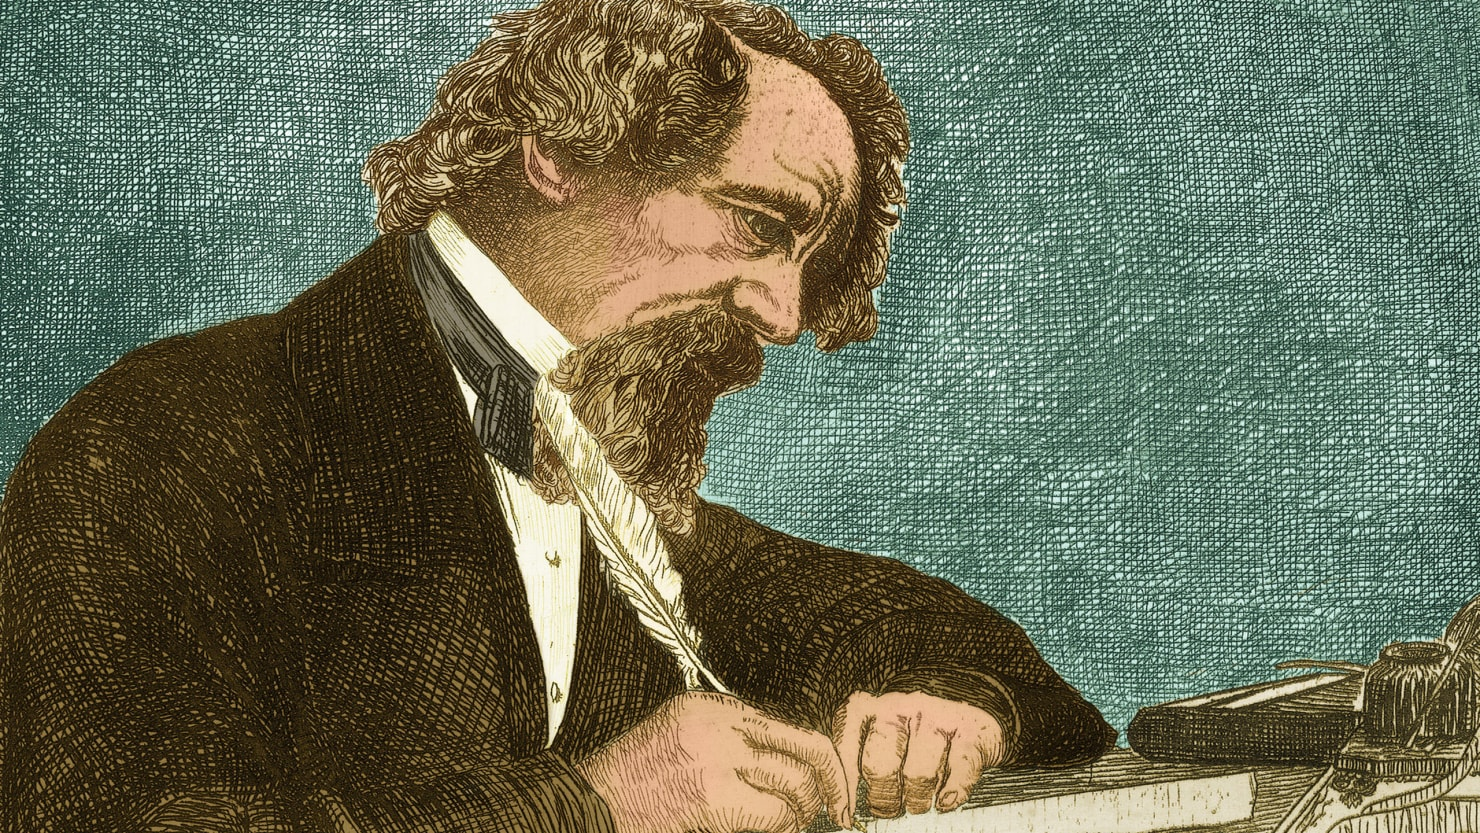 The Haunting Mystery of 'Edwin Drood' That Charles Dickens Left Behind